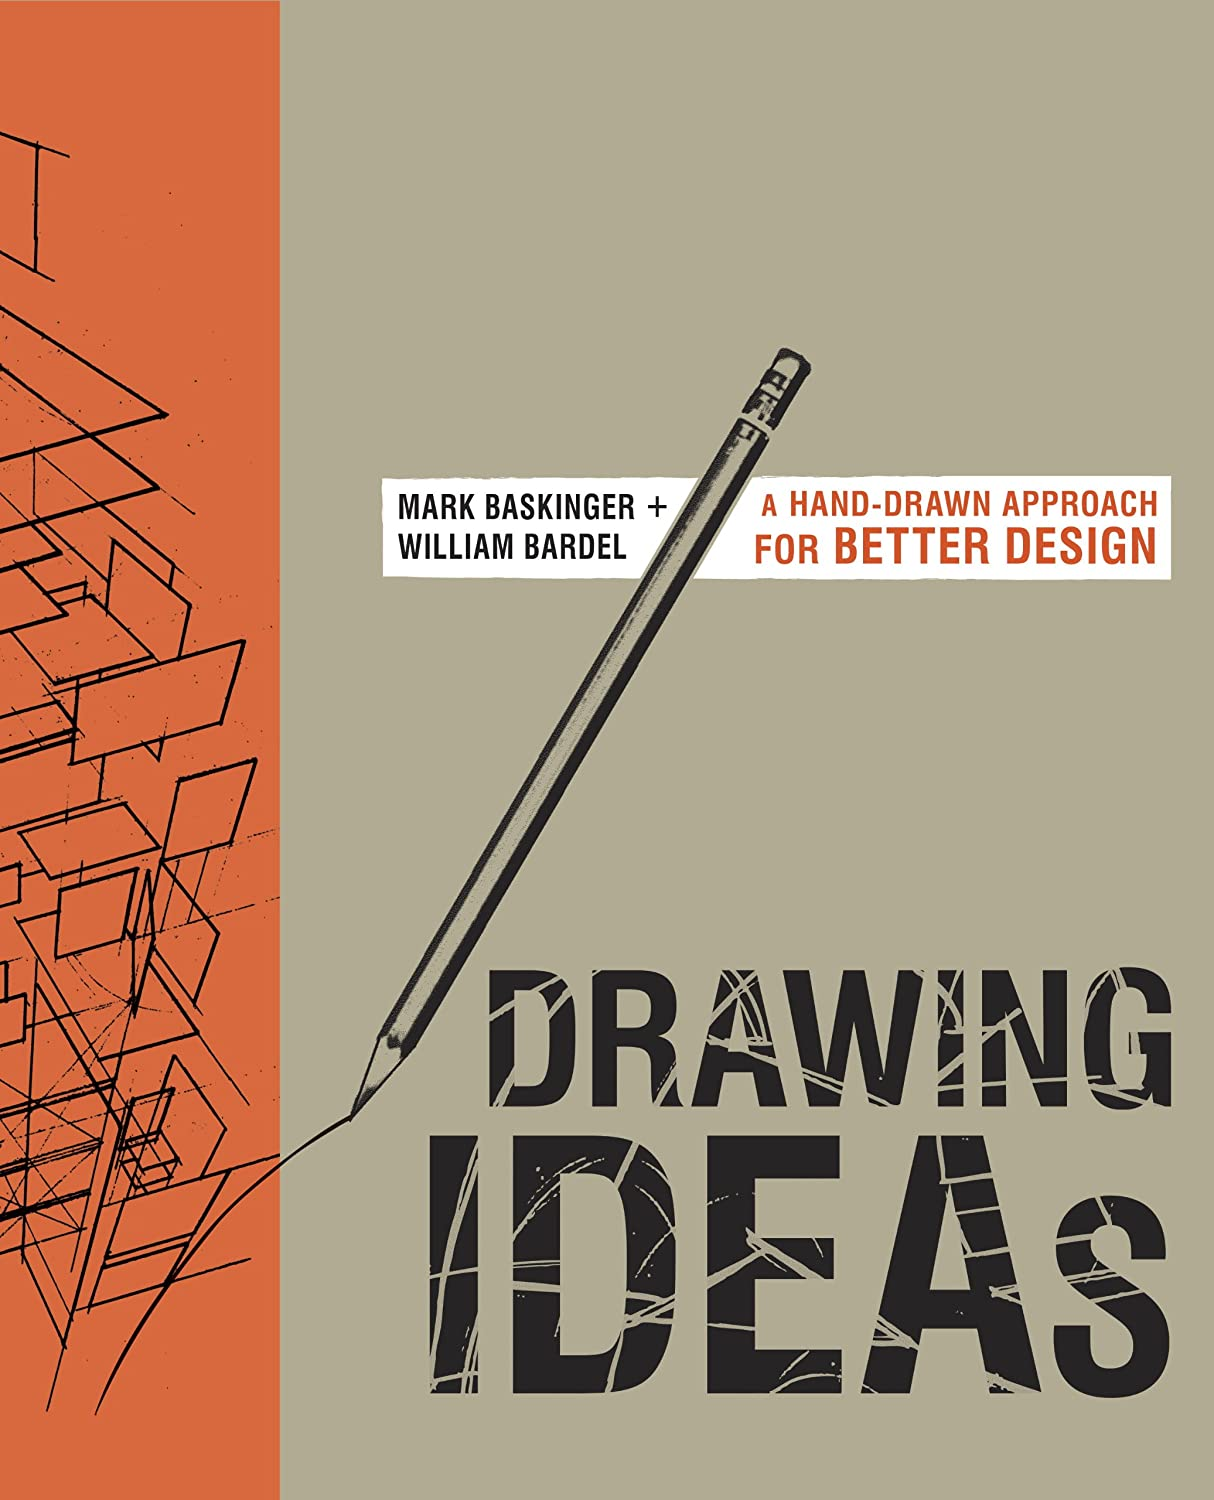 A Hand-Drawn Approach for Better Design - Mark Baskinger & William Bardel